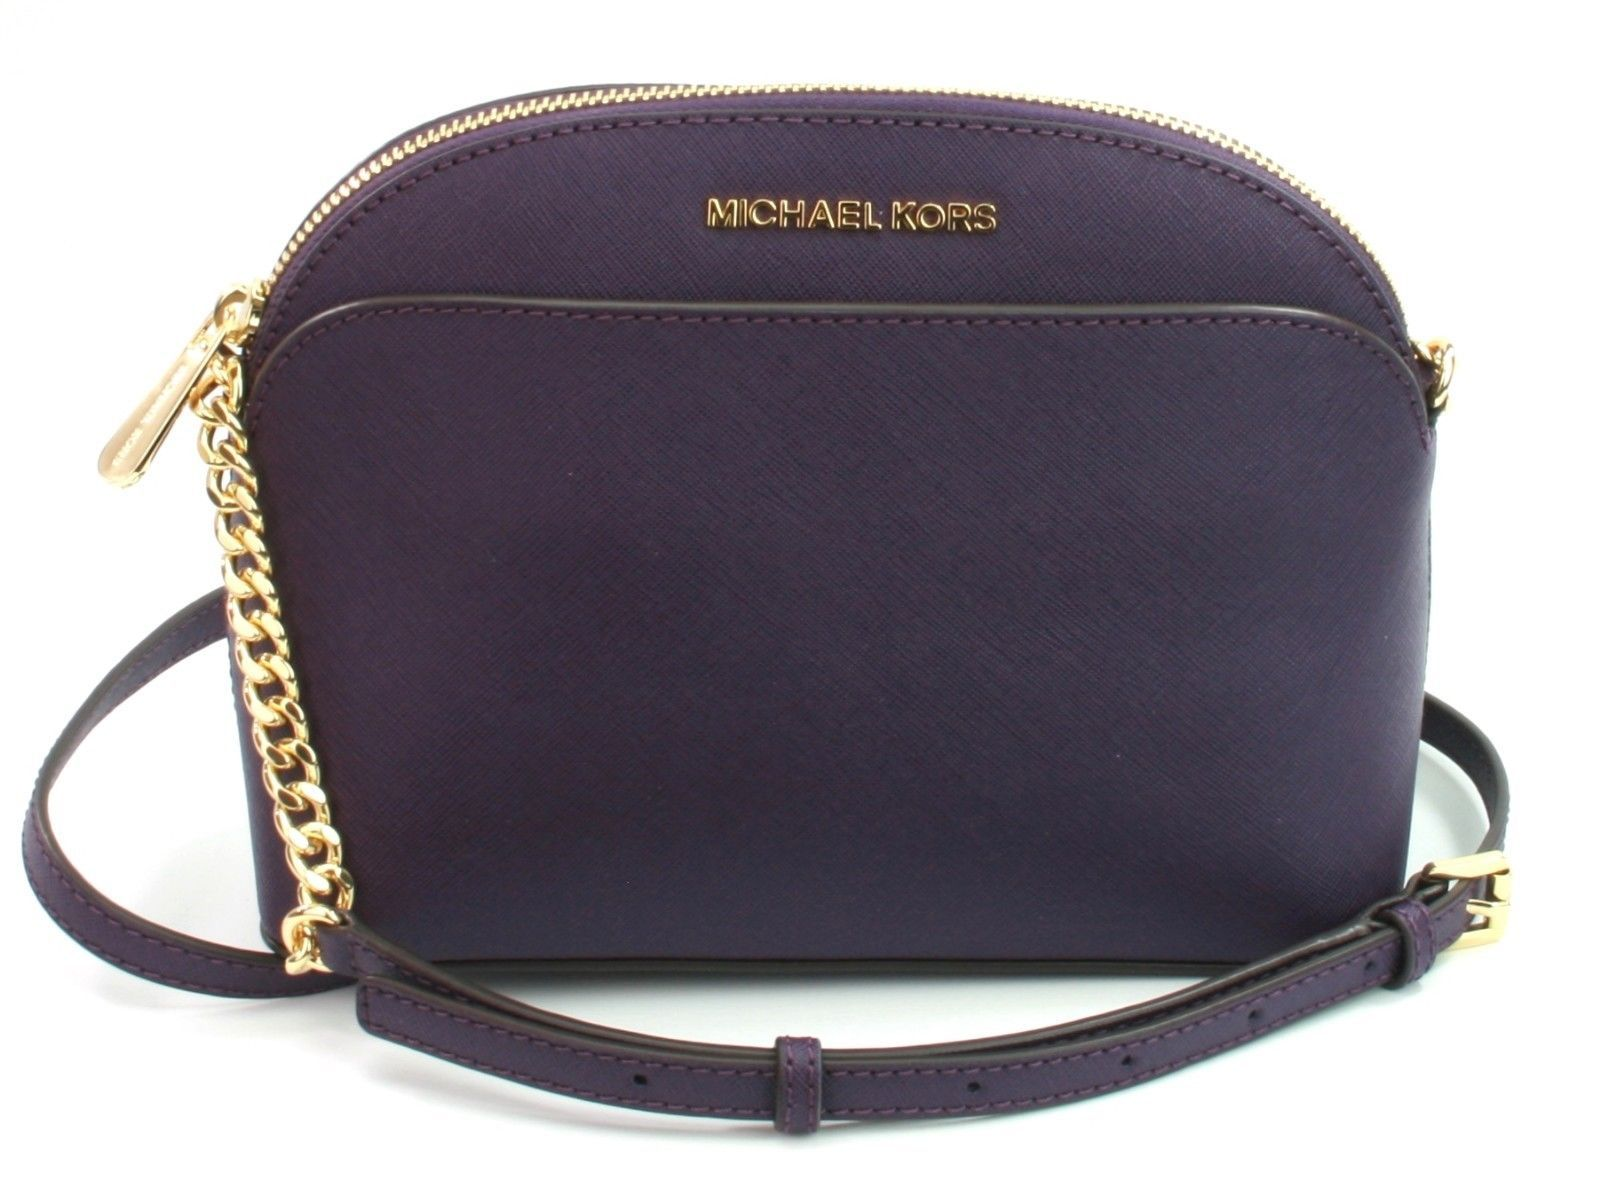 537ef1a6318a MICHAEL KORS Emmy Cuir Violet Chaîne Sac and 50 similar items